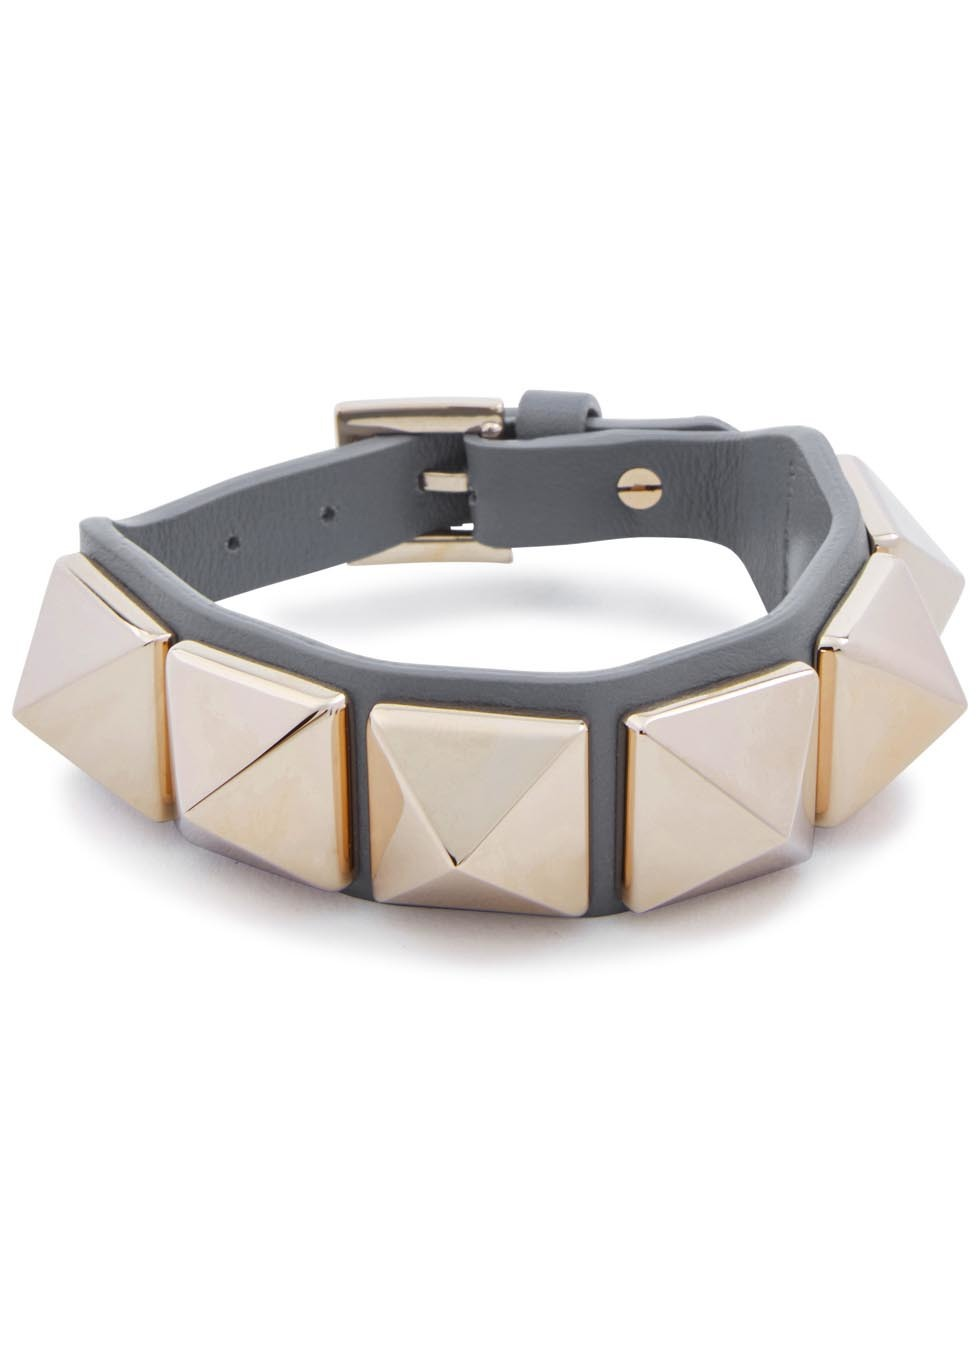 Rockstud Grey Leather Bracelet - secondary colour: gold; predominant colour: mid grey; occasions: casual, creative work; style: bangle/standard; size: standard; material: leather; finish: plain; embellishment: studs; season: s/s 2016; wardrobe: highlight